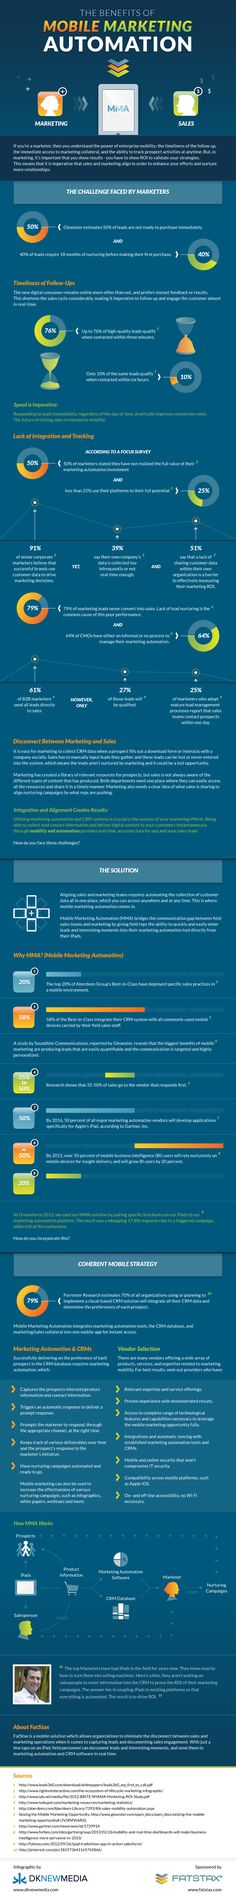 The Benefits of Mobile Marketing Automation [INFOGRAPHIC]